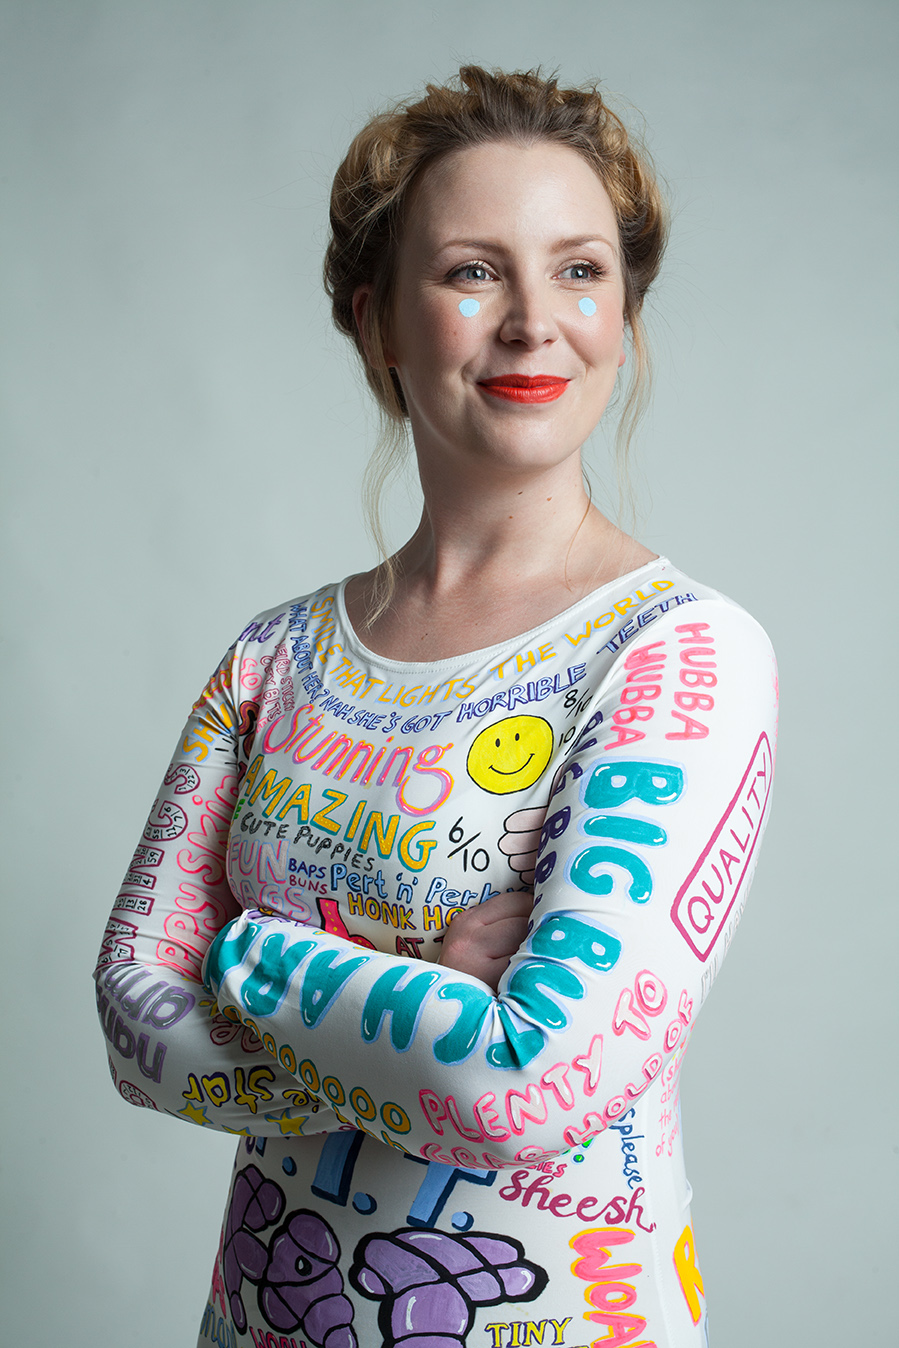 This artist designed a dress covered in all the things people have said about her body